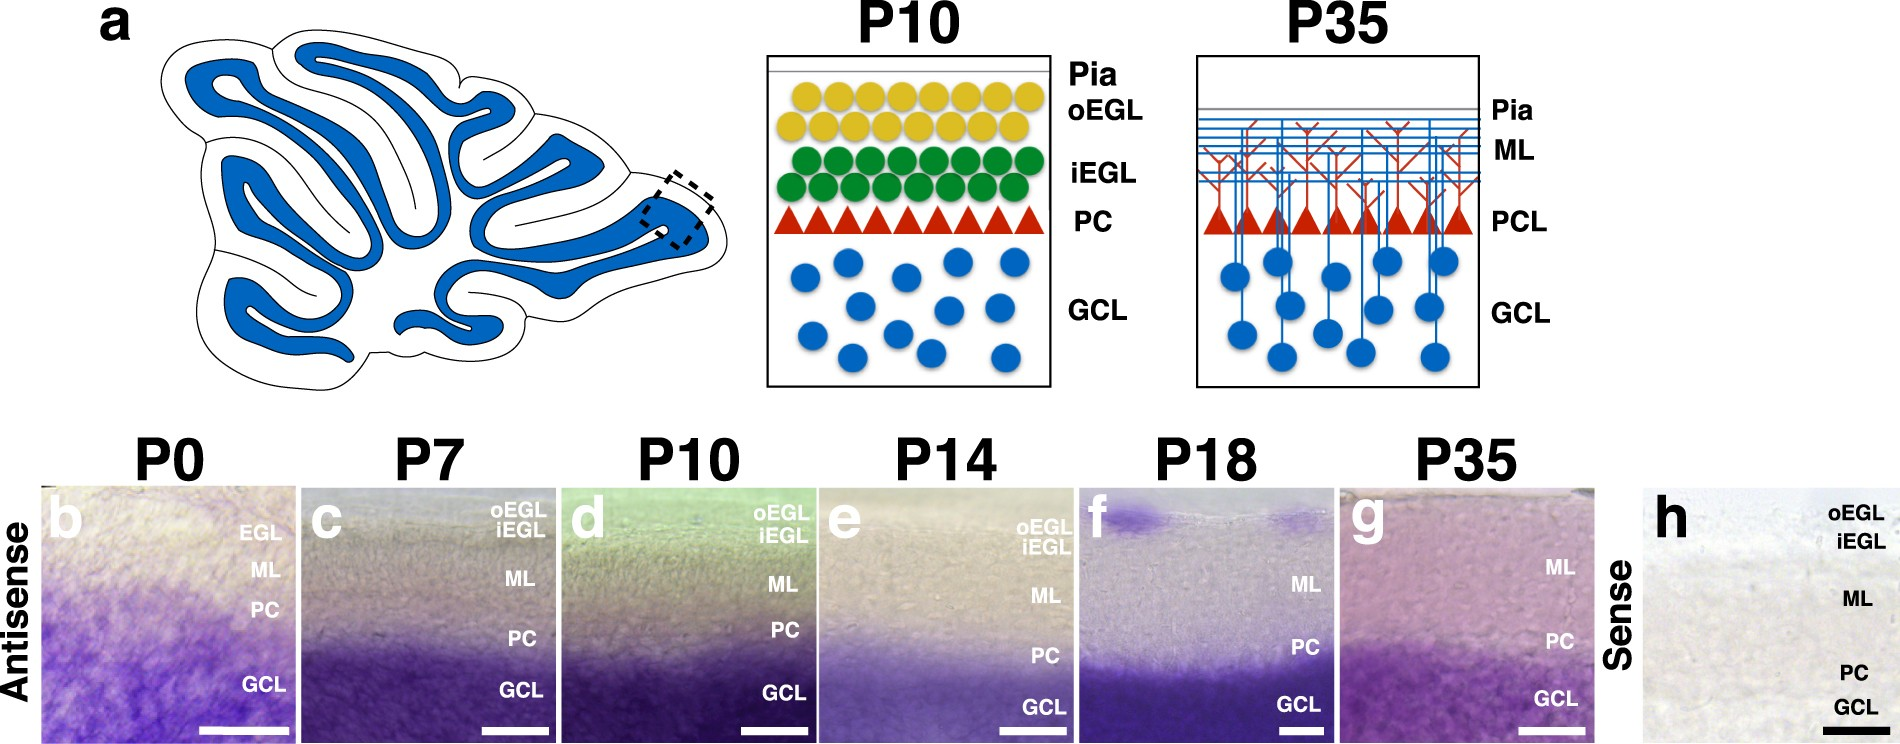 The Racgap Chimaerin Is Essential For Cerebellar Granule Cell Figure 2 Basic Structure Of Neuronal Circuitry In Cerebellum Migration Scientific Reports